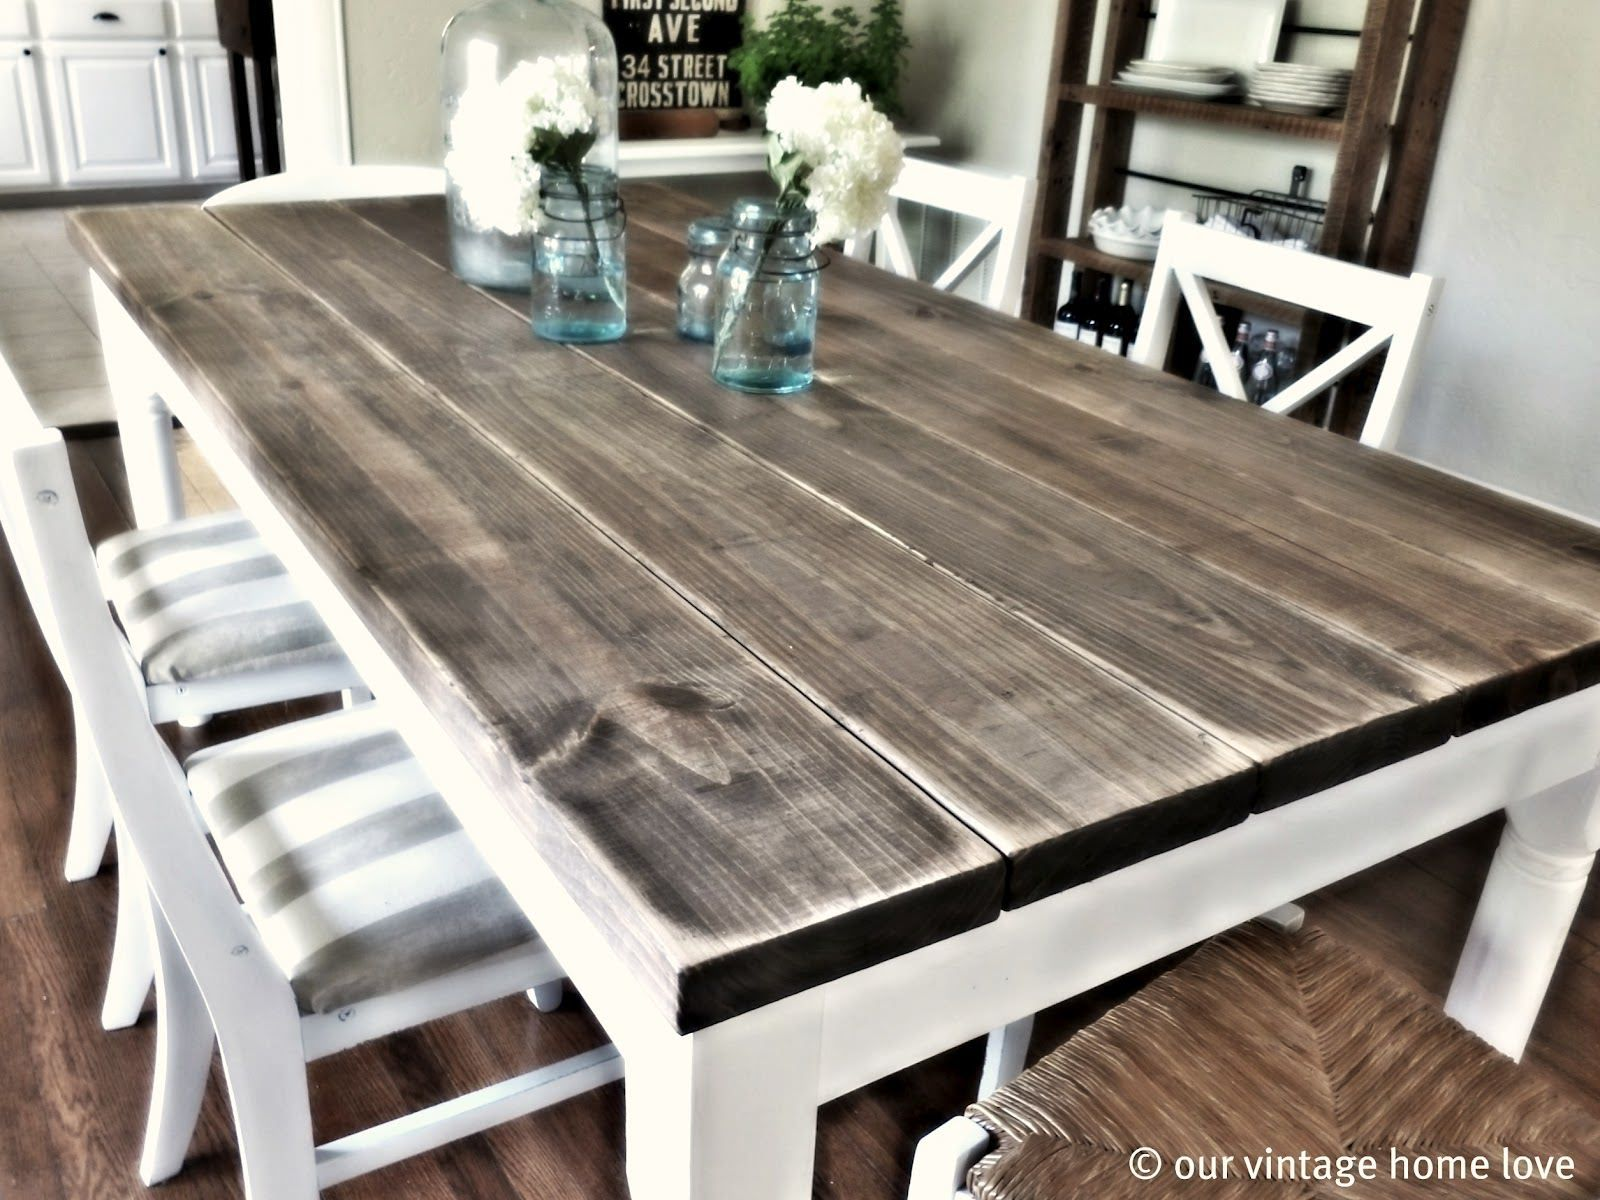 Dining table top design ideas - Like The Colors Of This Table For Our Farmhouse Table White On Bottom Washed